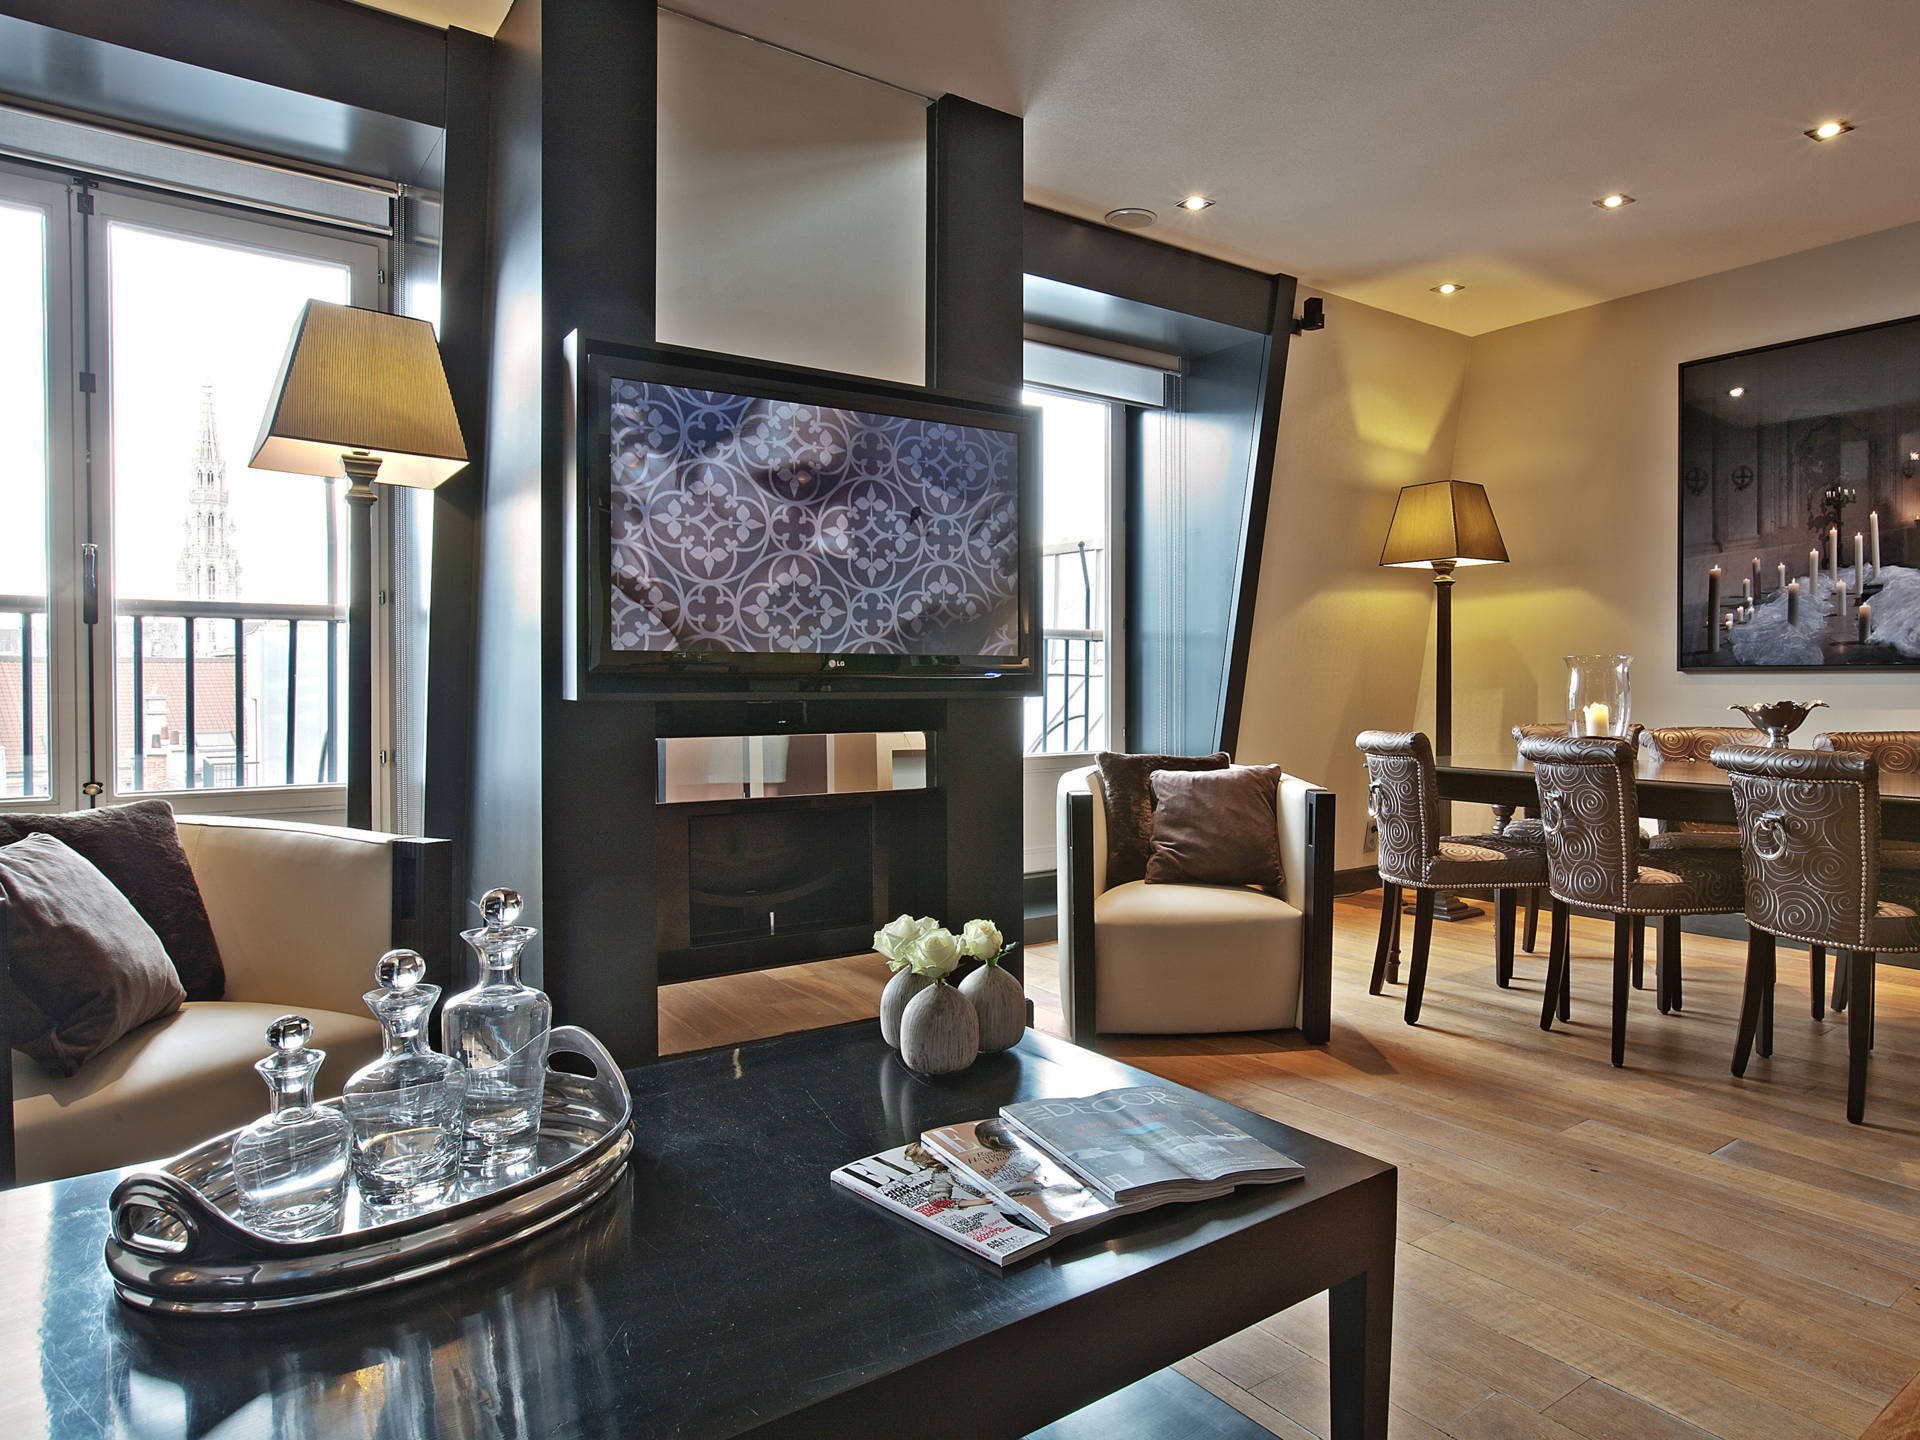 Emporium-Voyage-The-Dominican-Brussels-Executive Suite (2).jpg